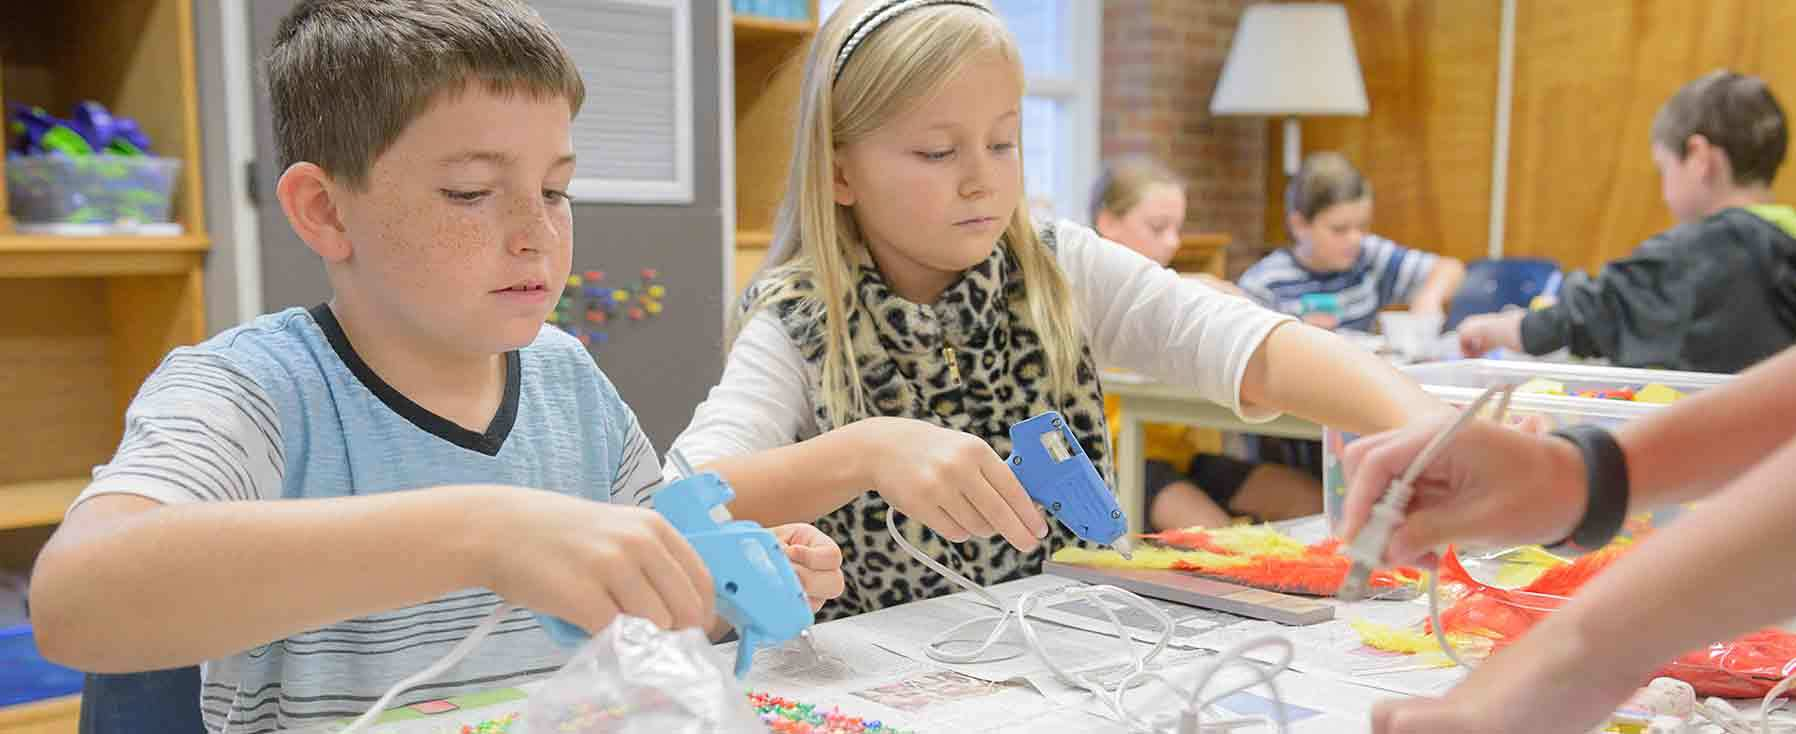 Inspired by the makerspace movement, Tatnall's Lower School Tinker Lab encourages hands-on experimentation, engineering and discovery. In the TinkerLab, students have created a number of innovative projects including BrushBots made out of toothbrushes and catapults made using popsicle sticks and plastic spoons.